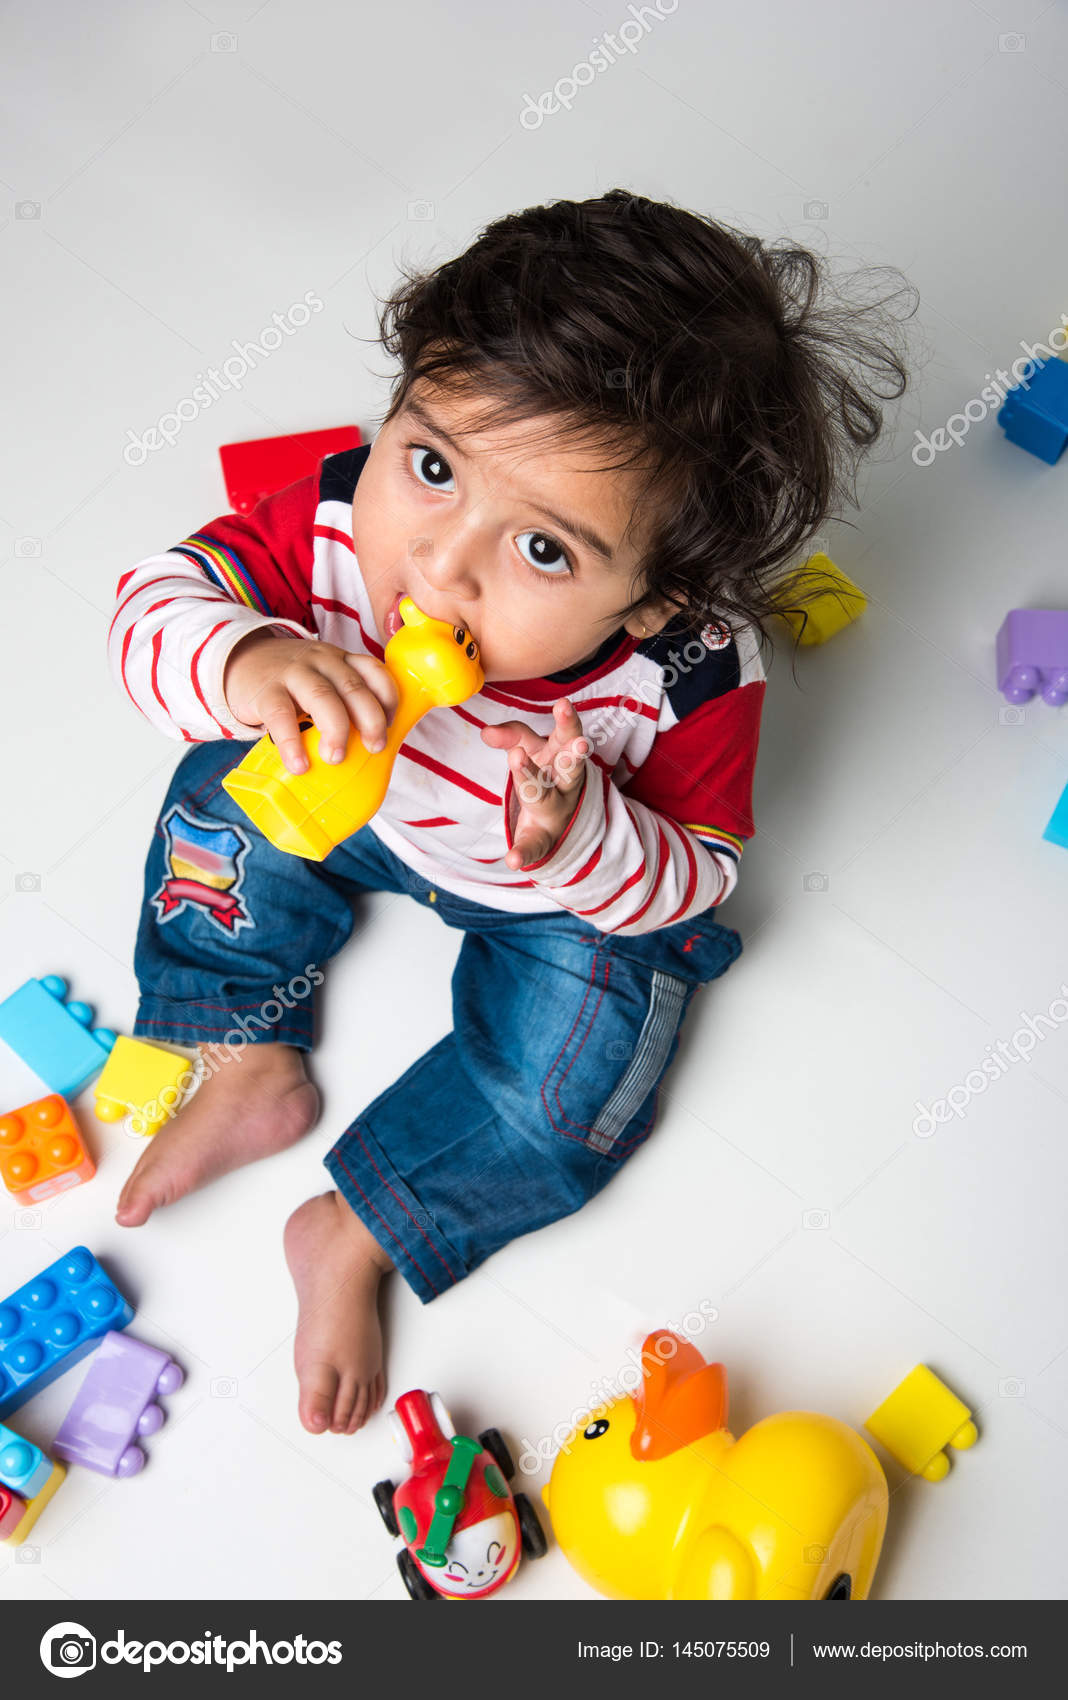 indian or asian small baby playing with toys or blocks over white